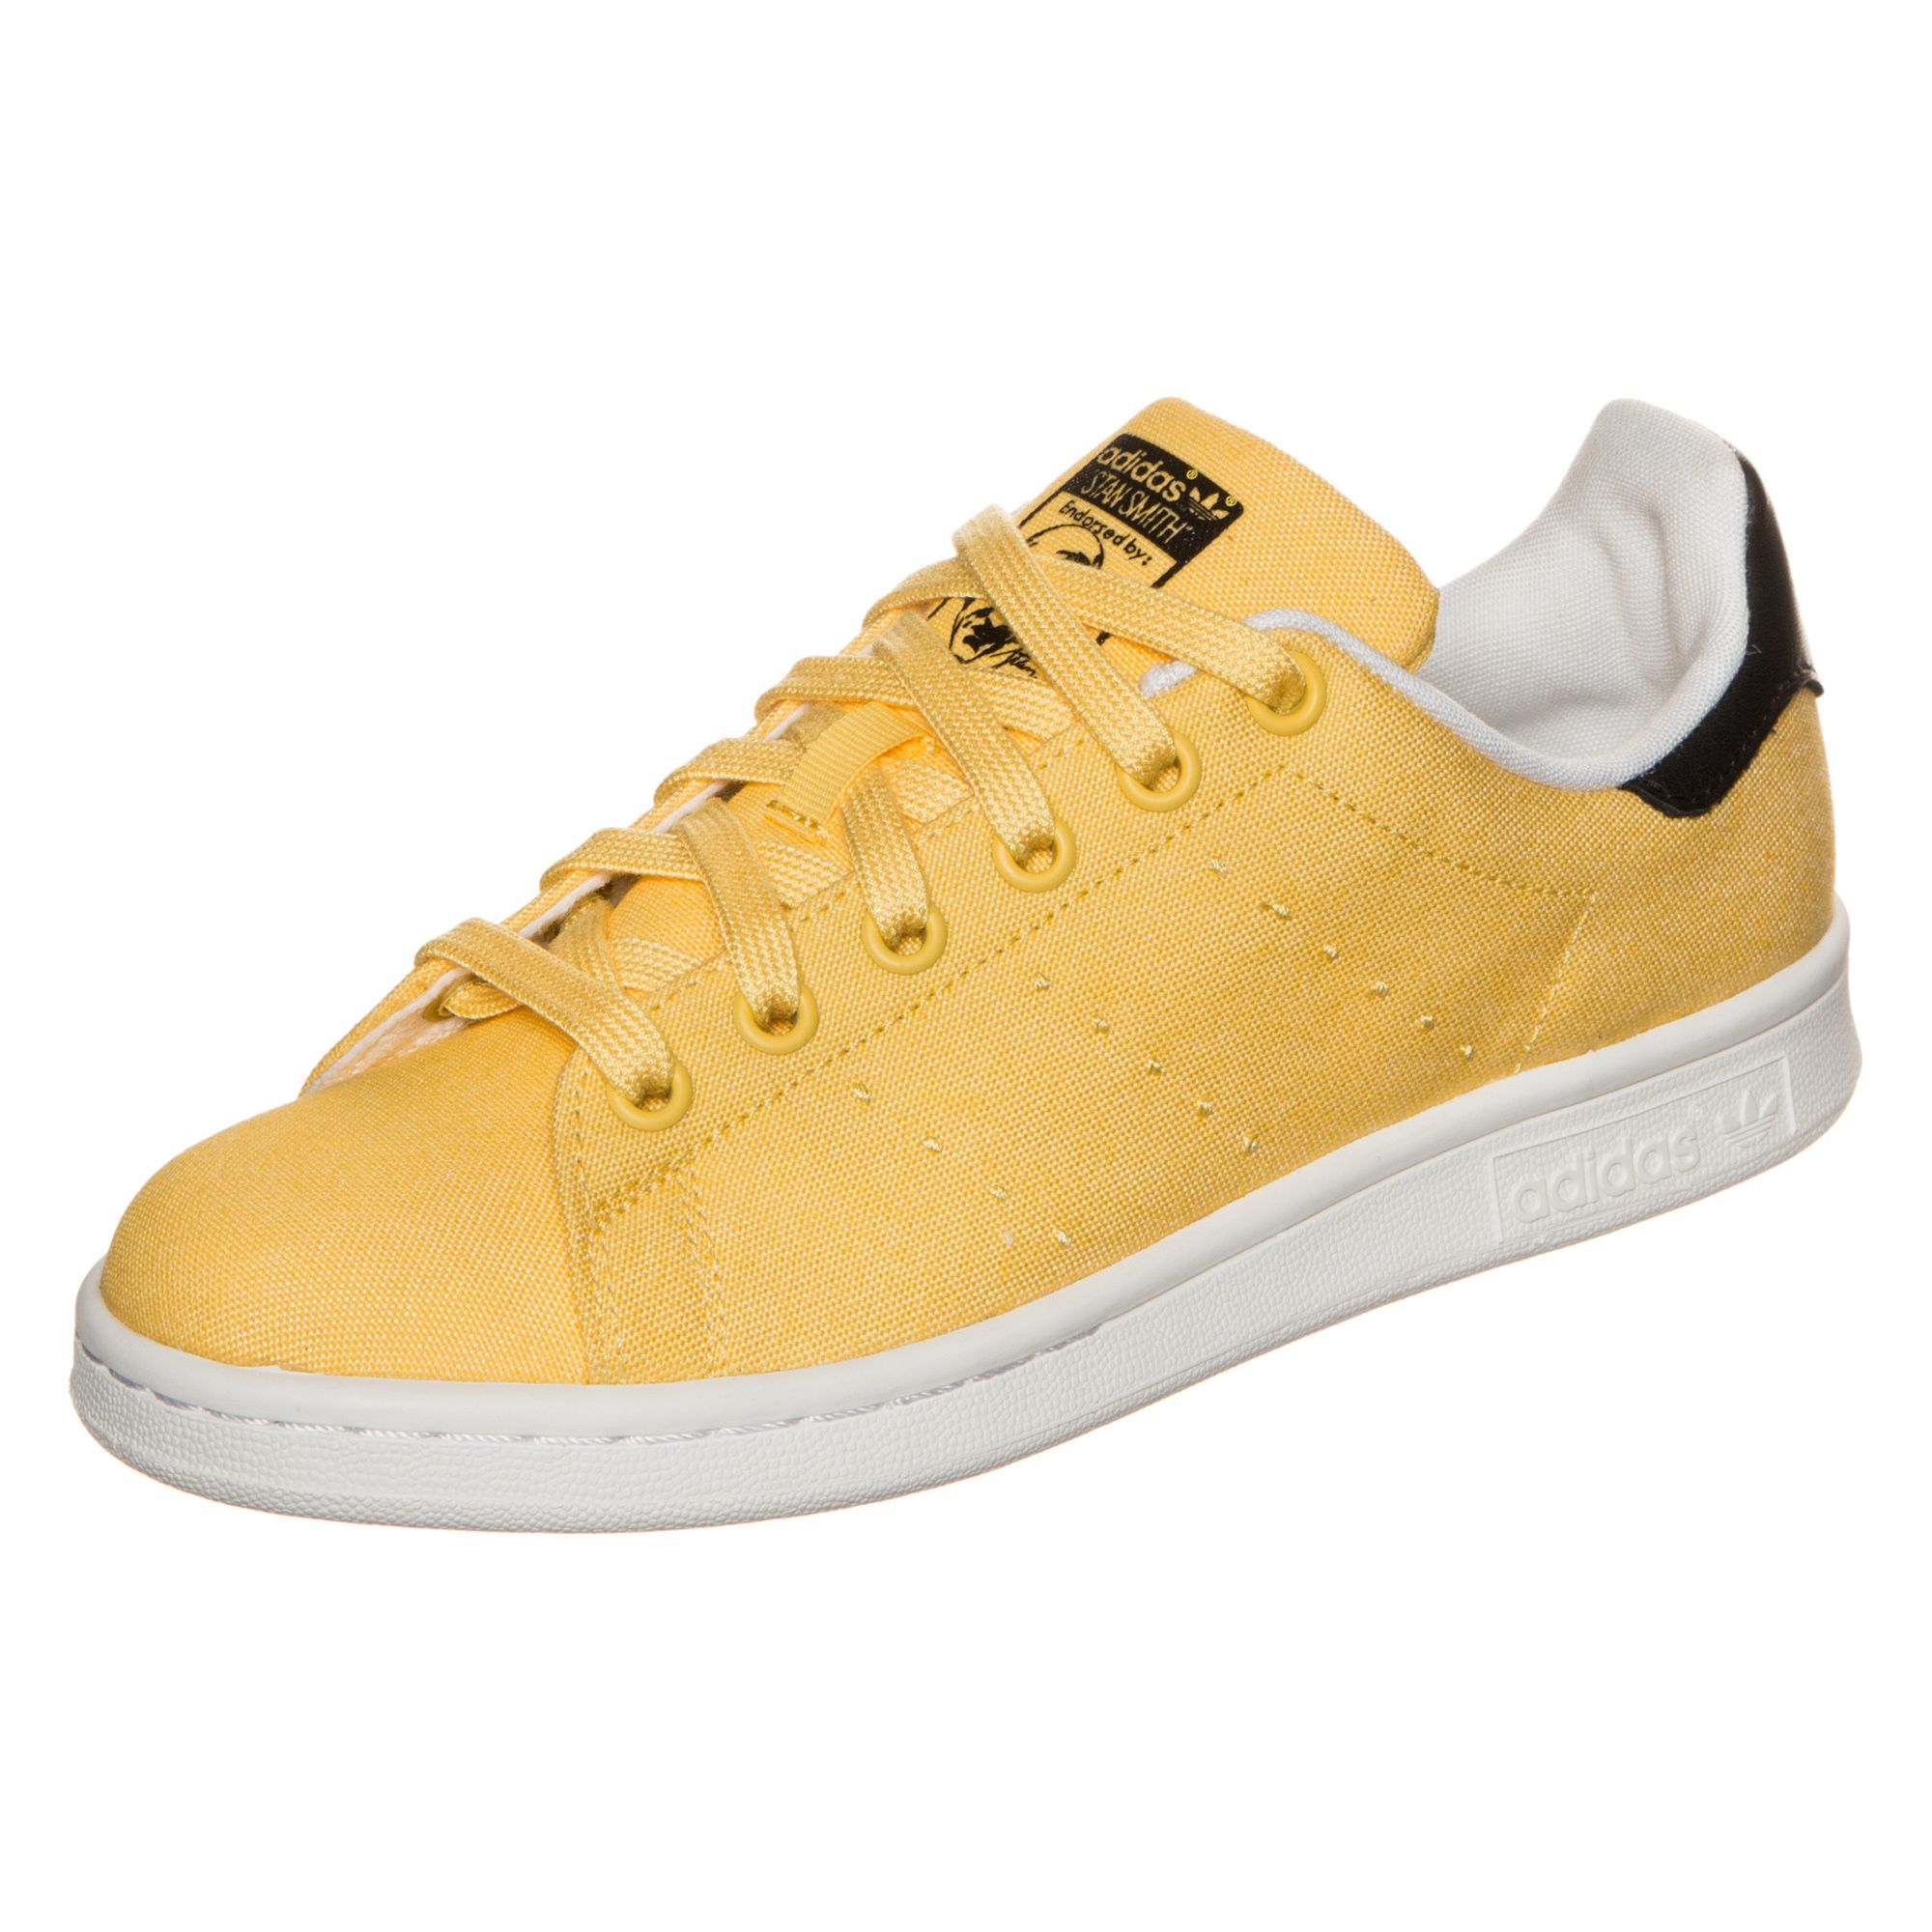 ADIDAS ORIGINALS adidas Originals Stan Smith Sneaker